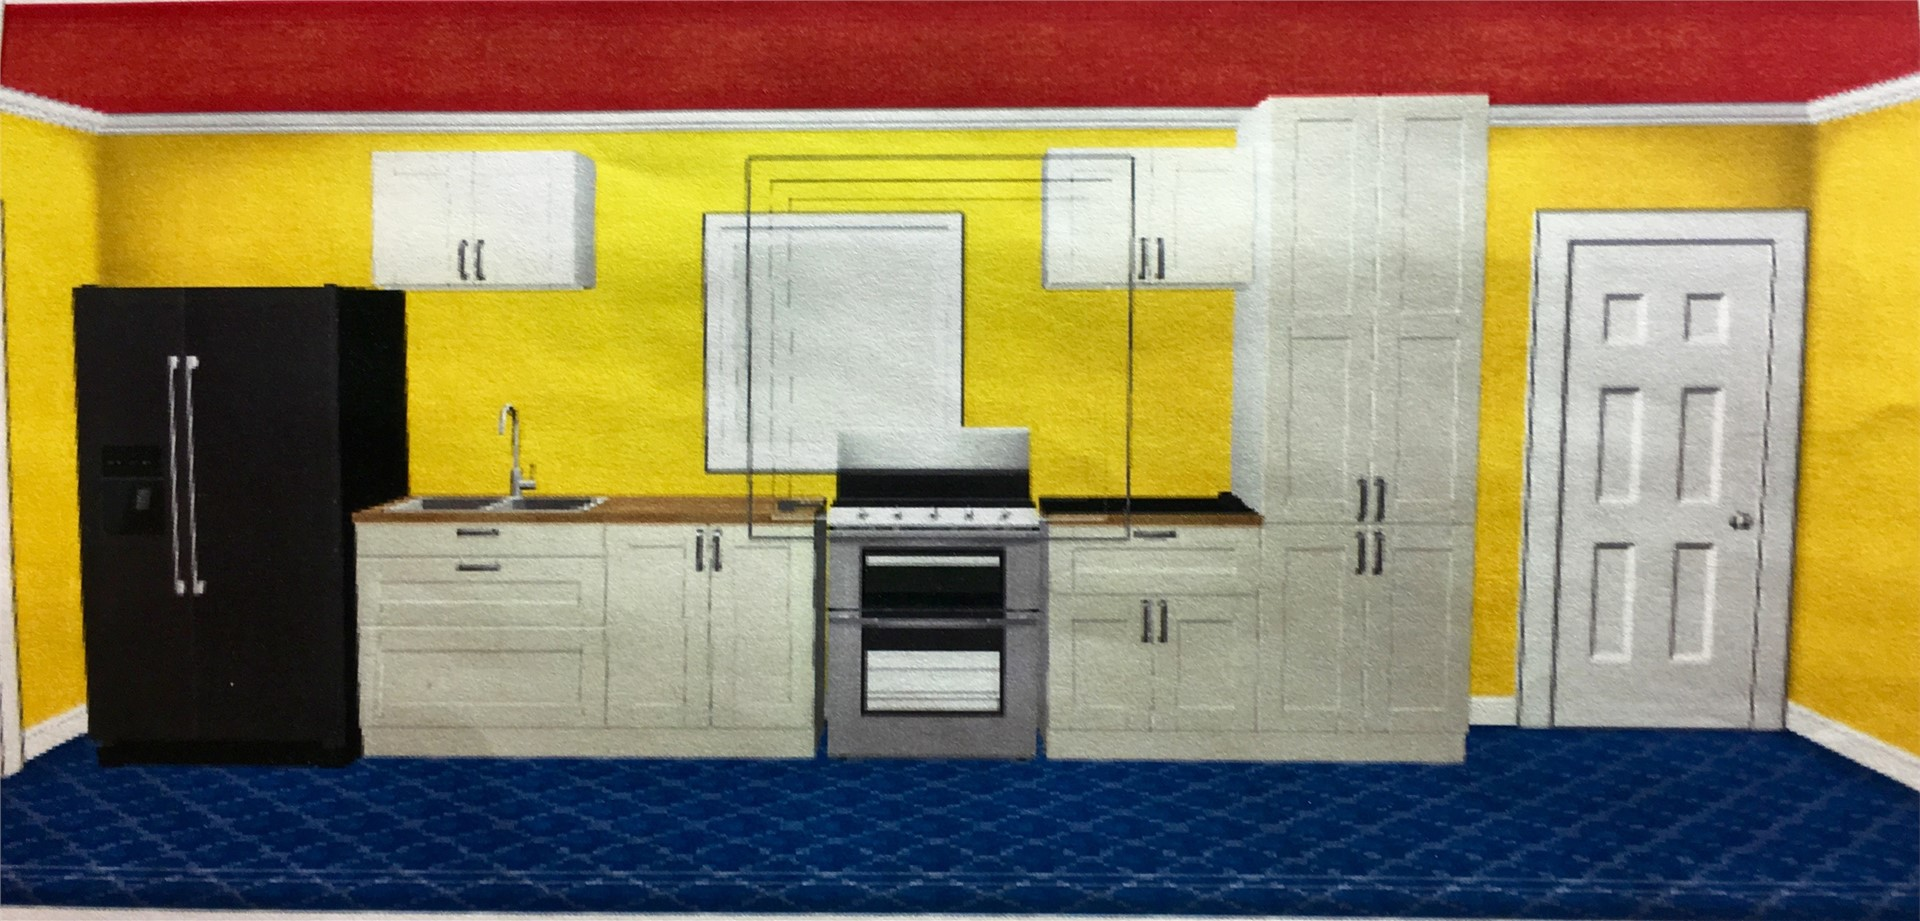 CADD-assisted kitchen design